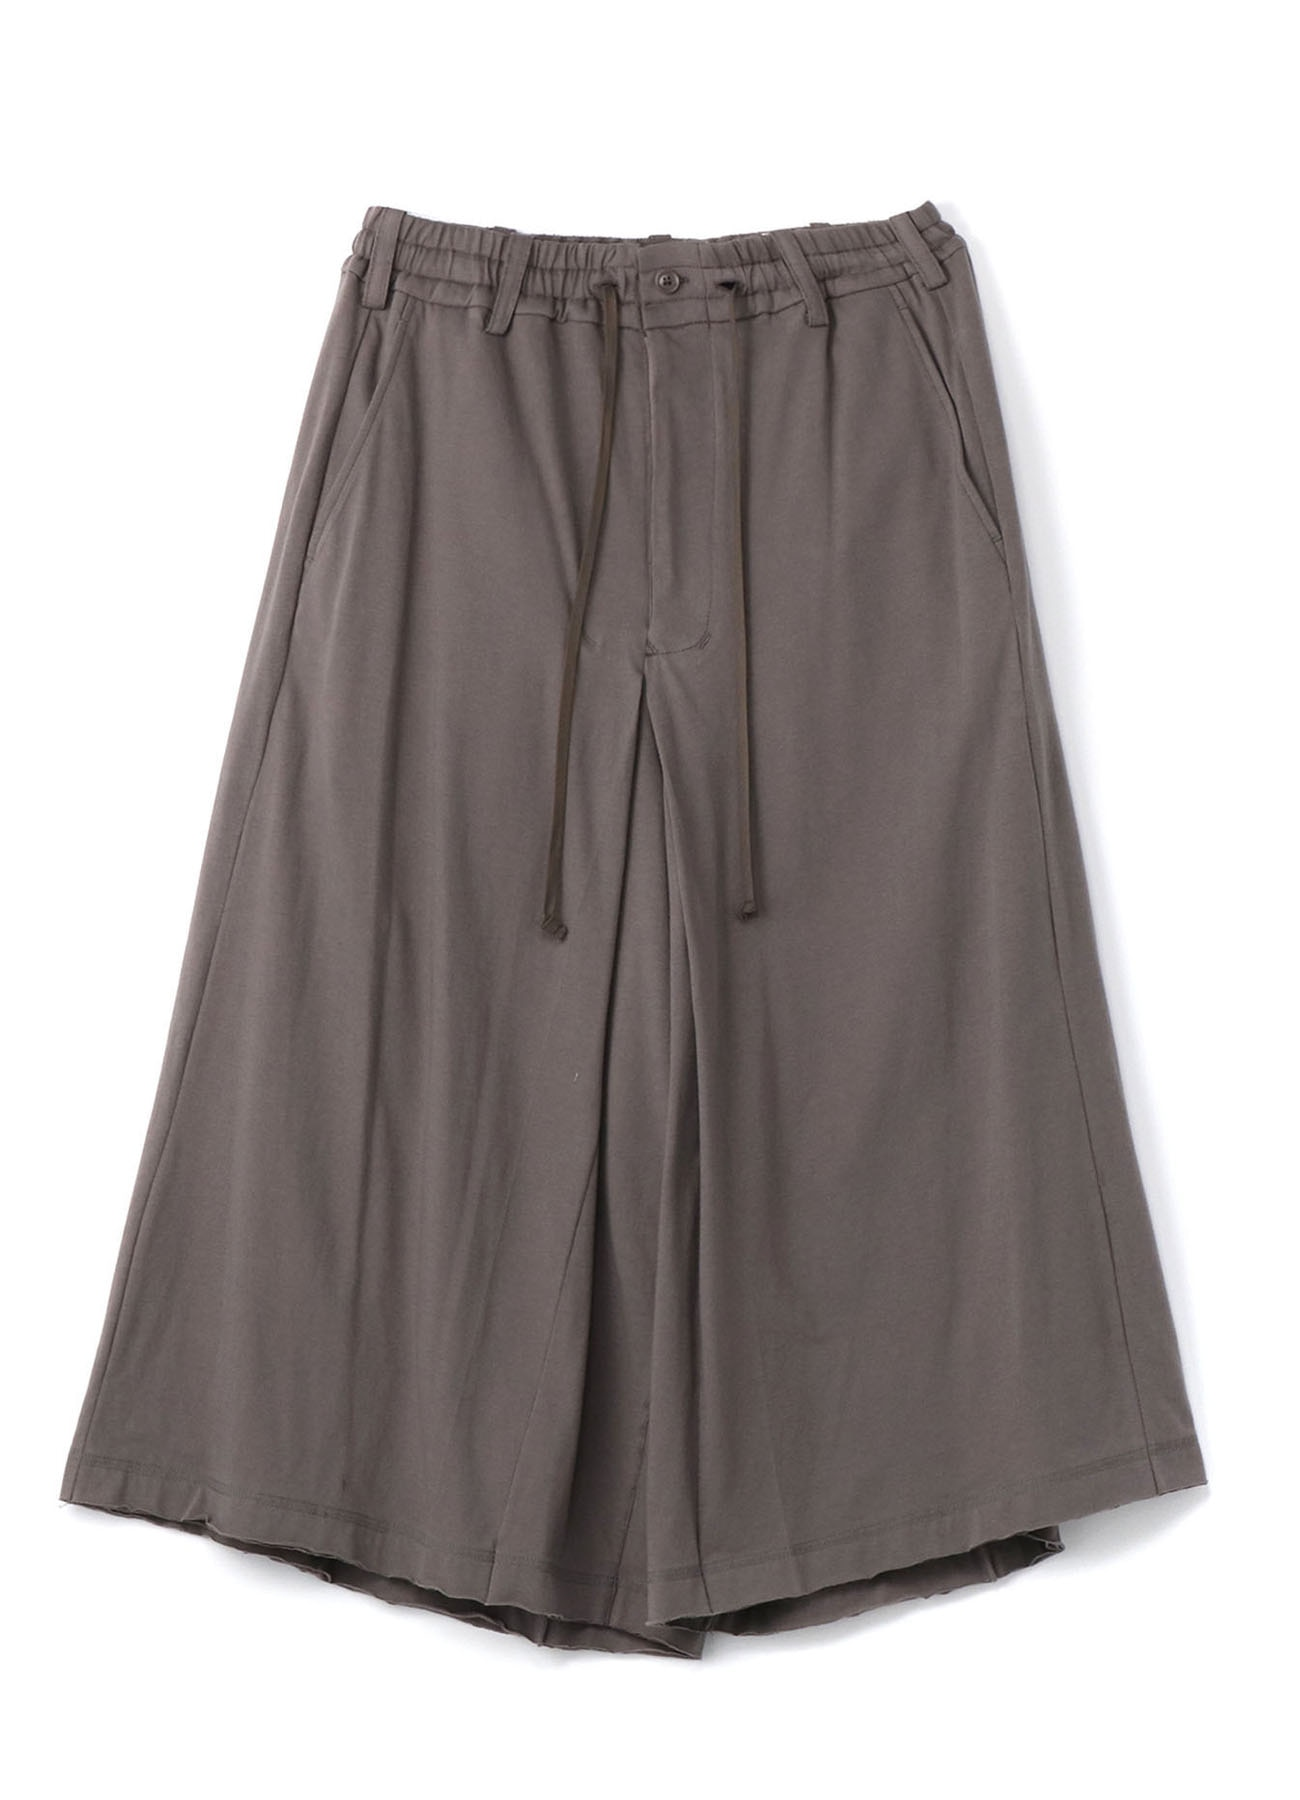 40/2 Cotton Jersey Hakama Pants